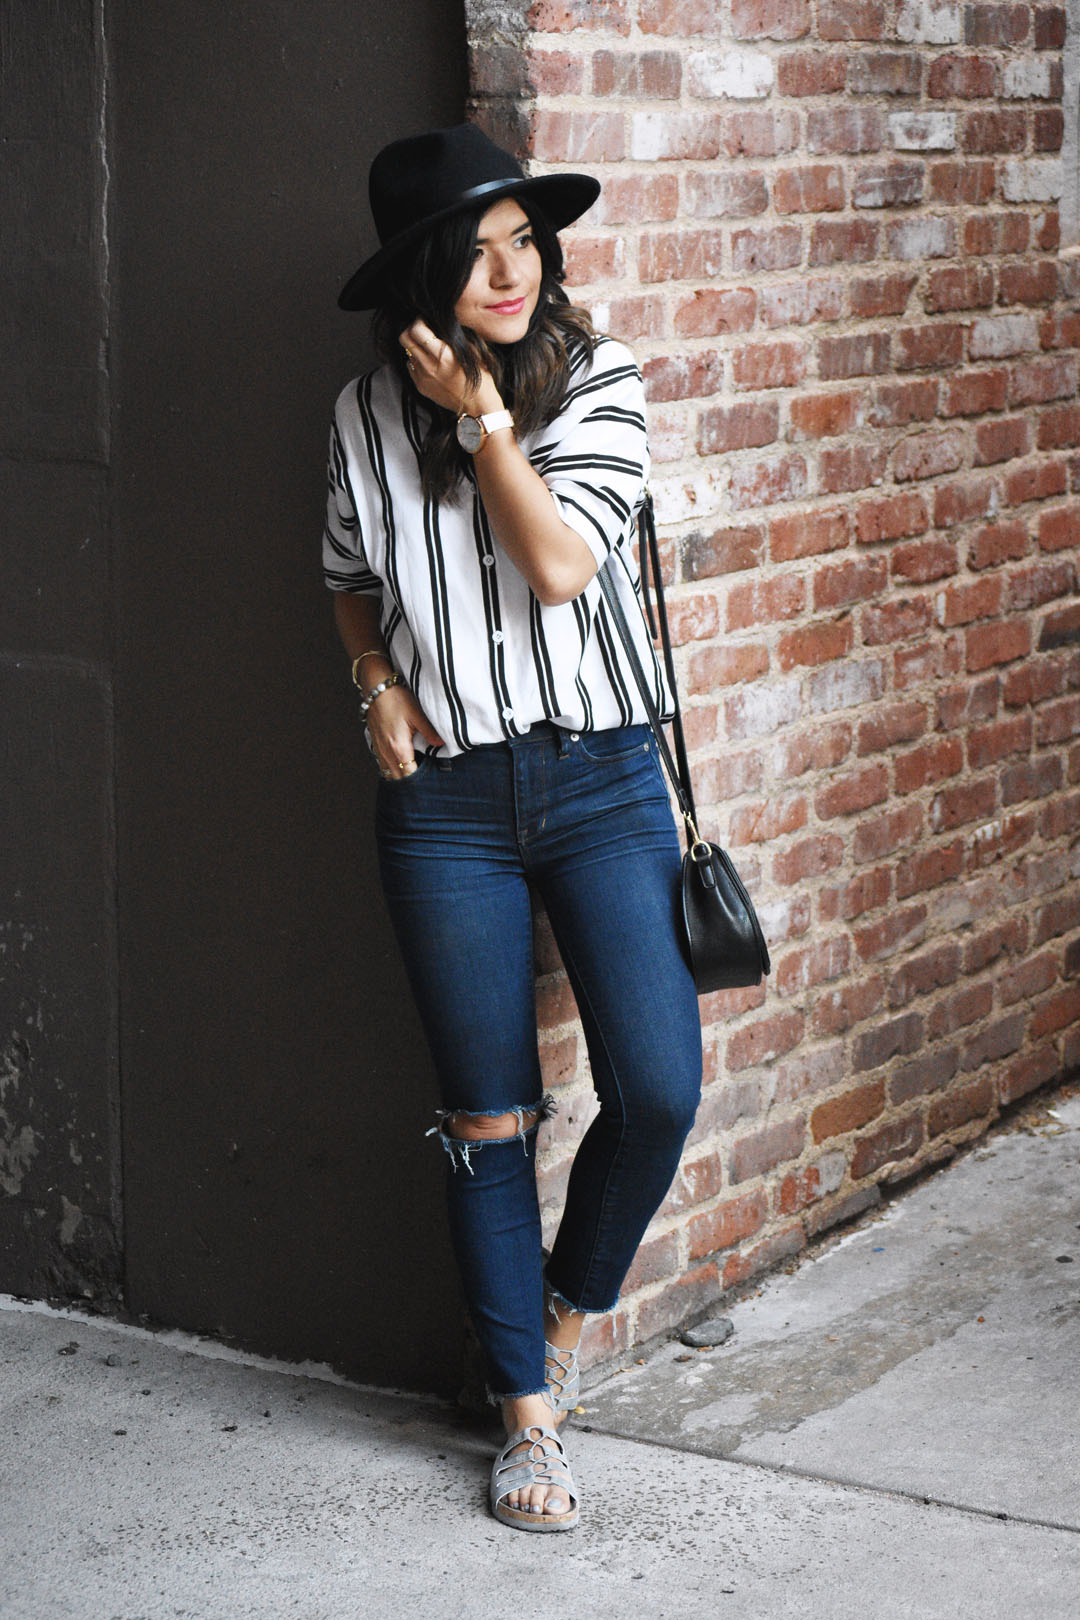 Carolina Hellal of Chic Talk wearing a stripe top, Madewell ripped jeans, and Skechers sandals